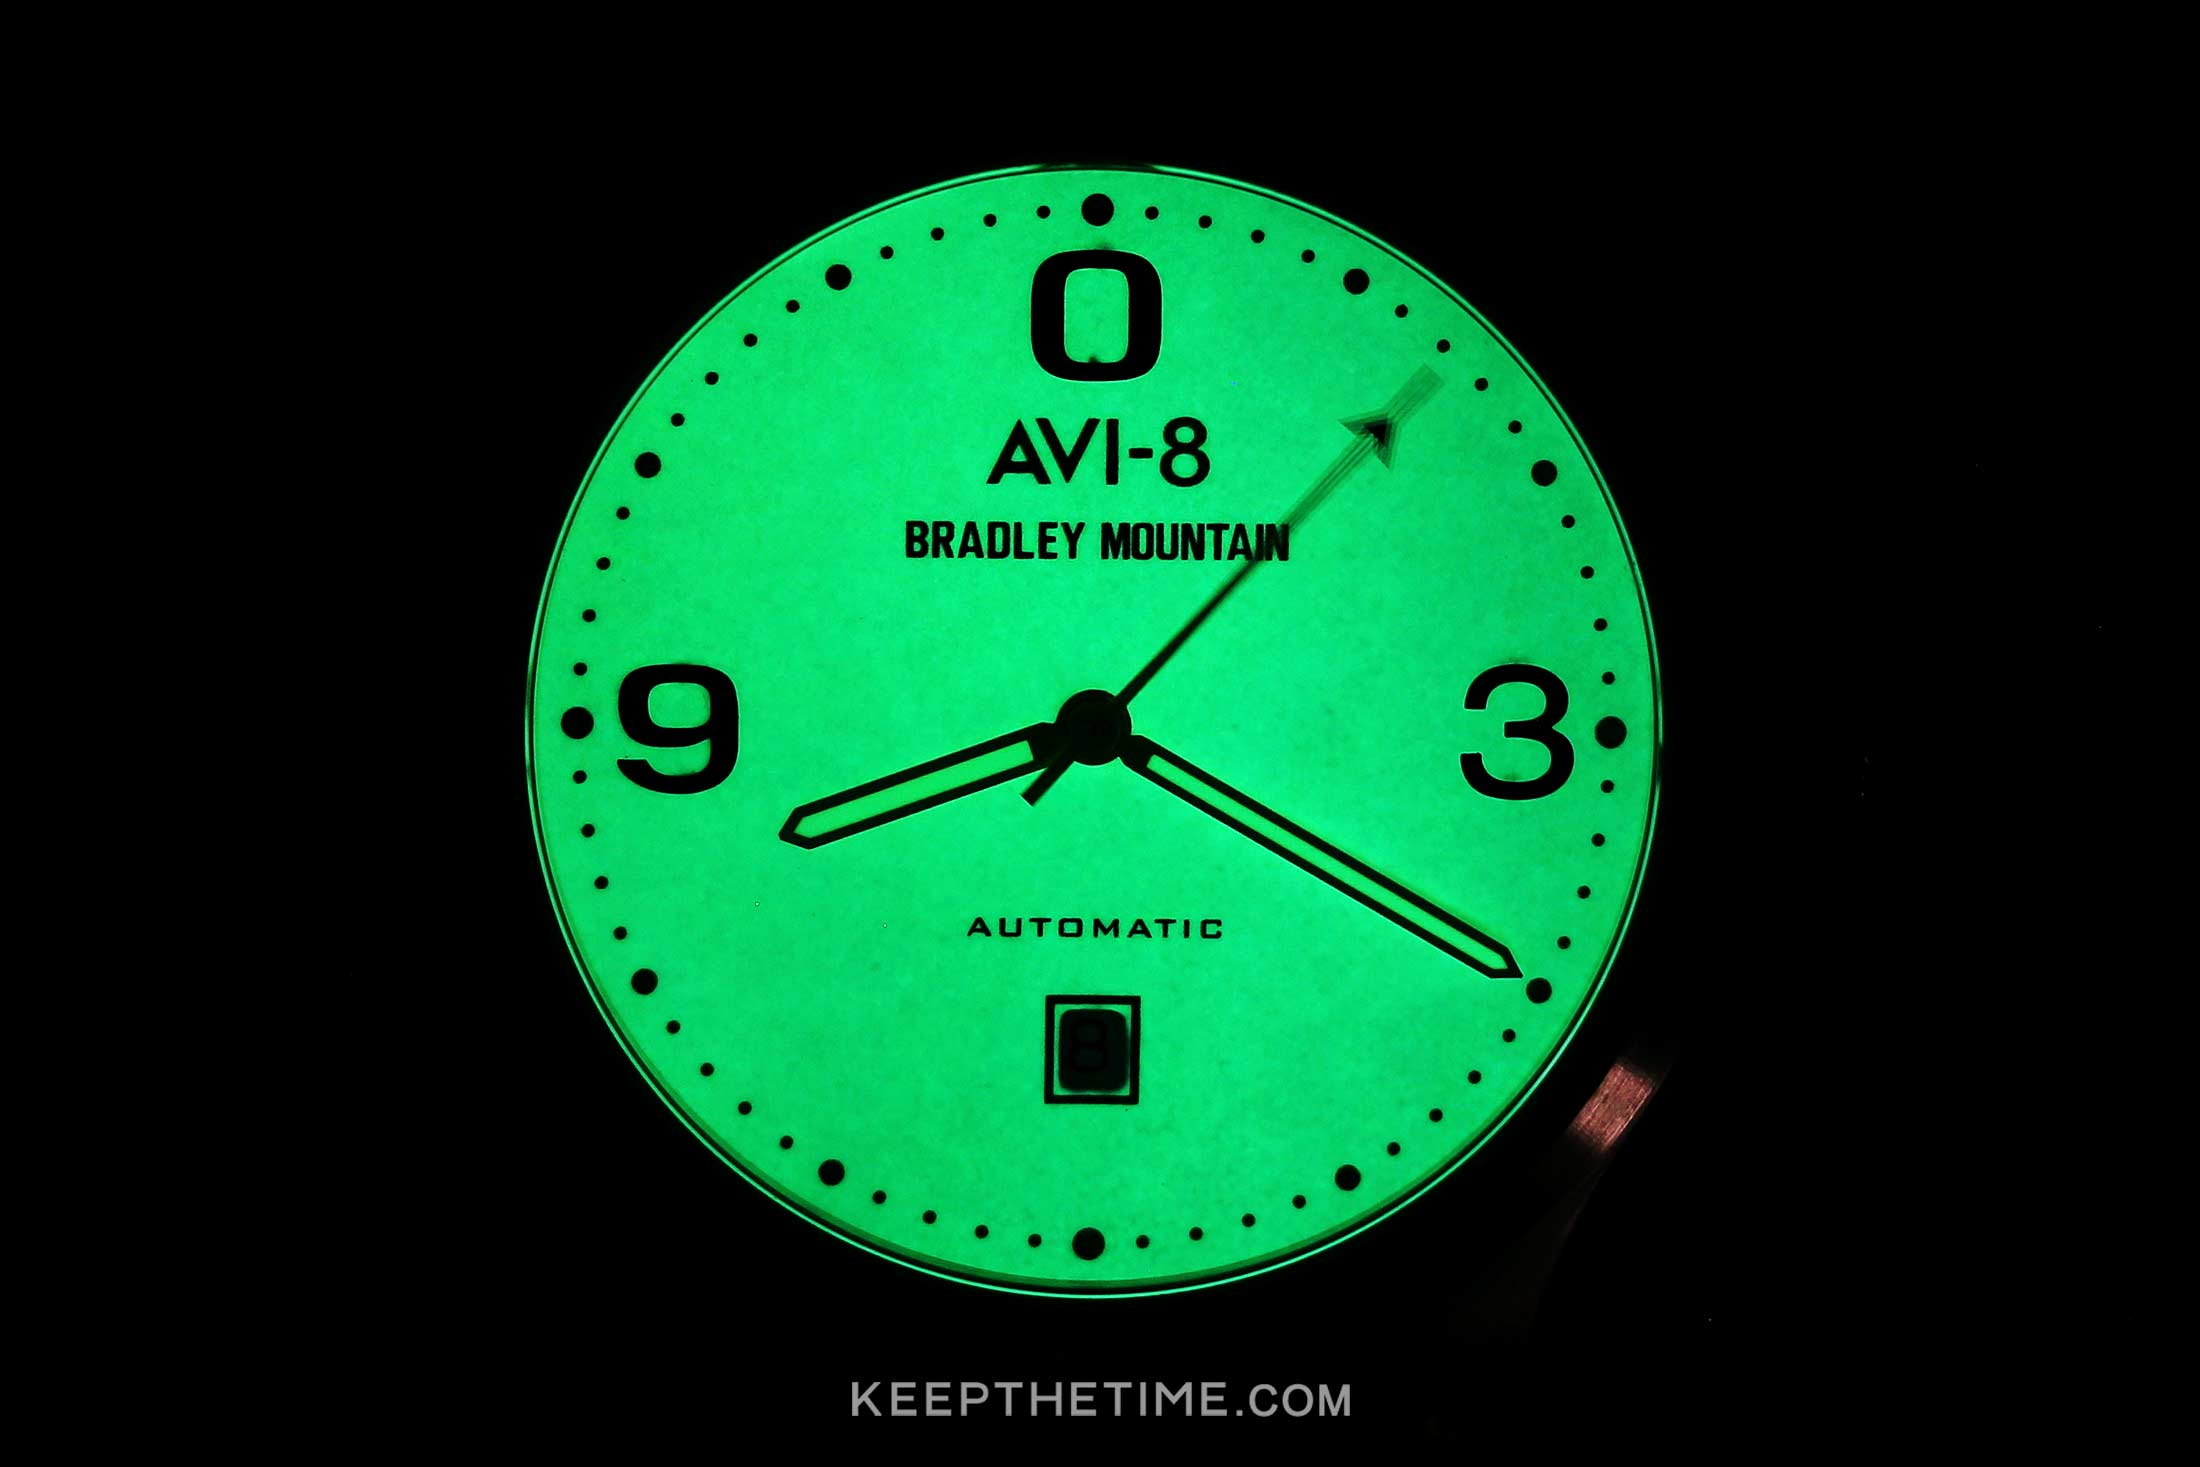 avi-8-bradley-mountain-lume-dial-lumeshot.jpg